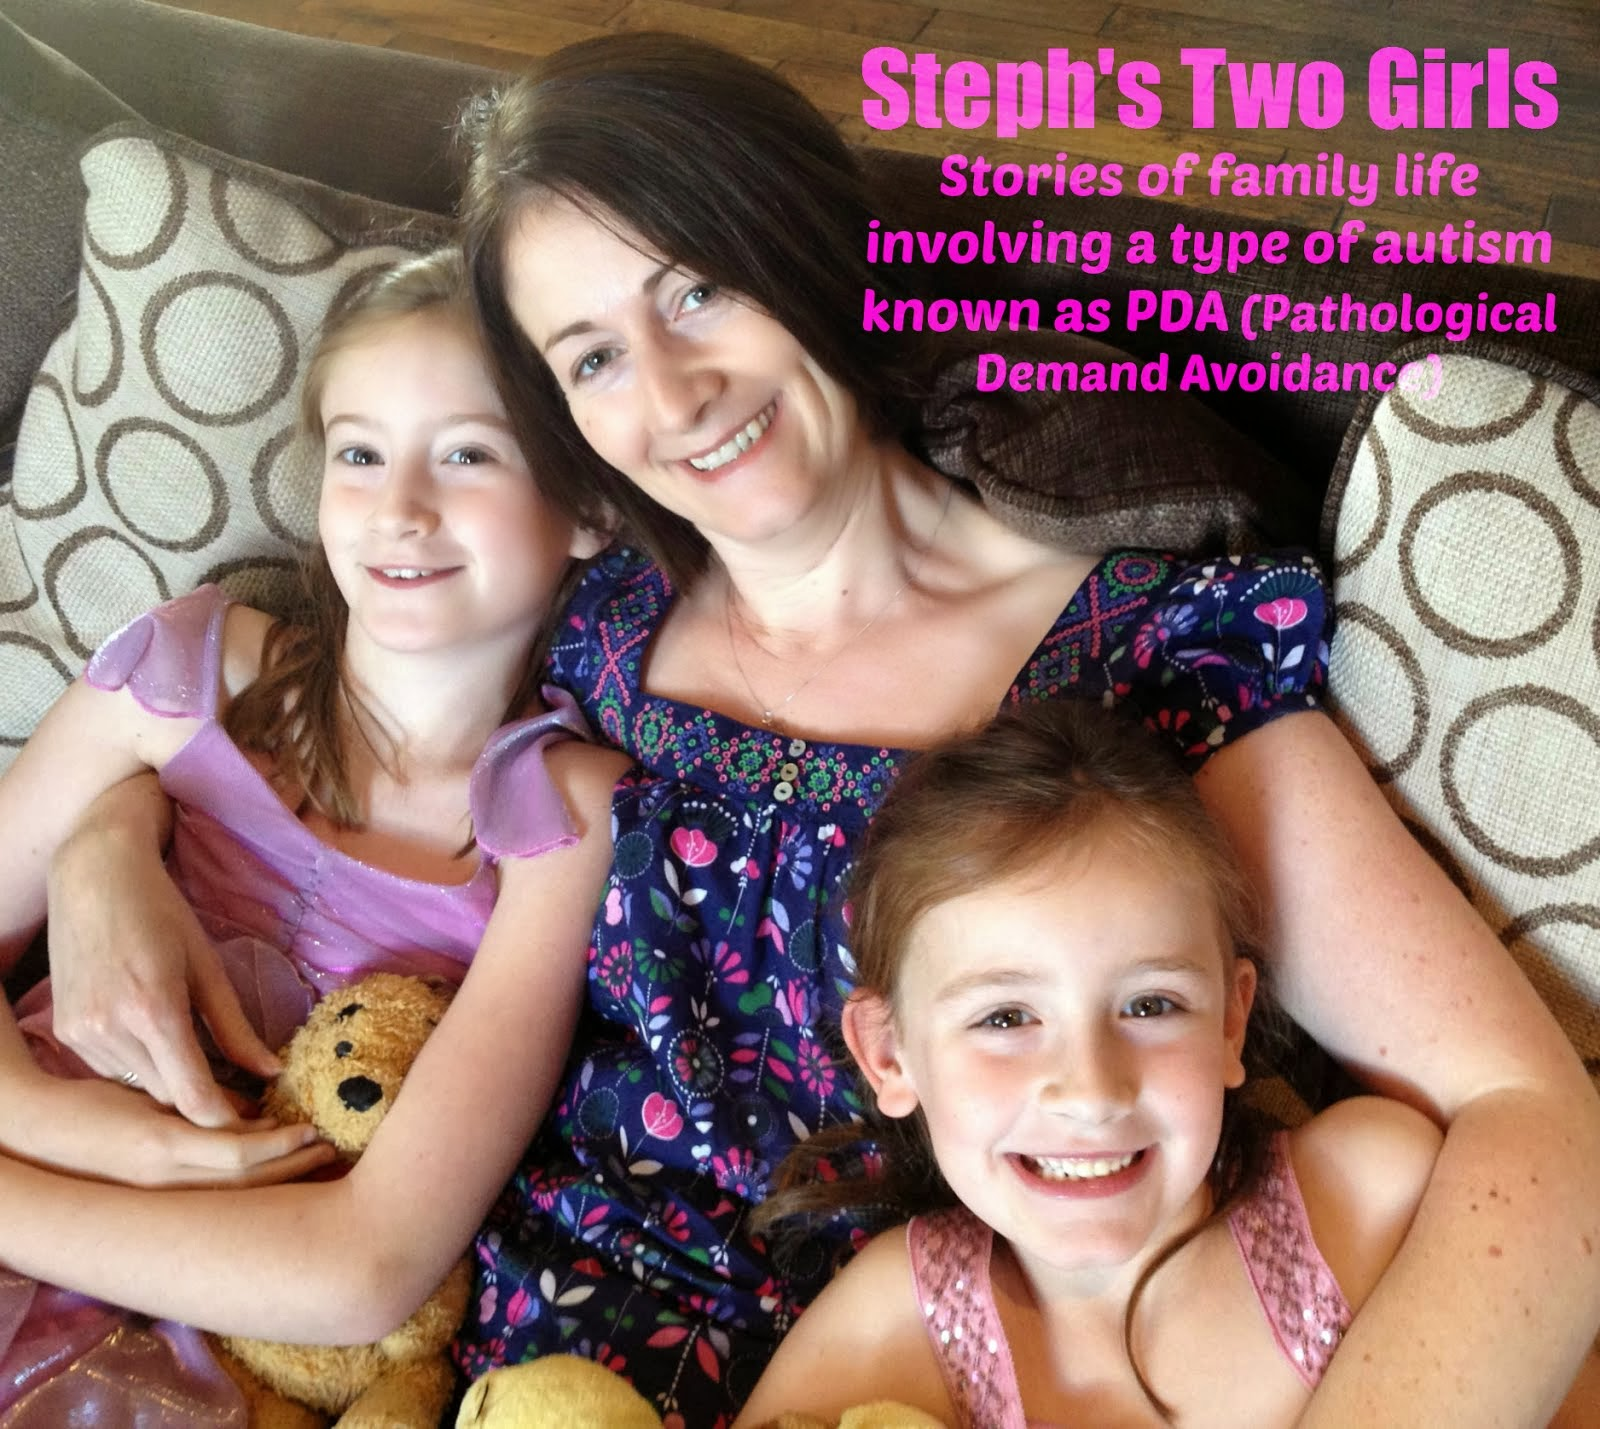 http://www.stephstwogirls.co.uk/ Steph is a Mum of two little girls, one of whom has a diagnosis of PDA